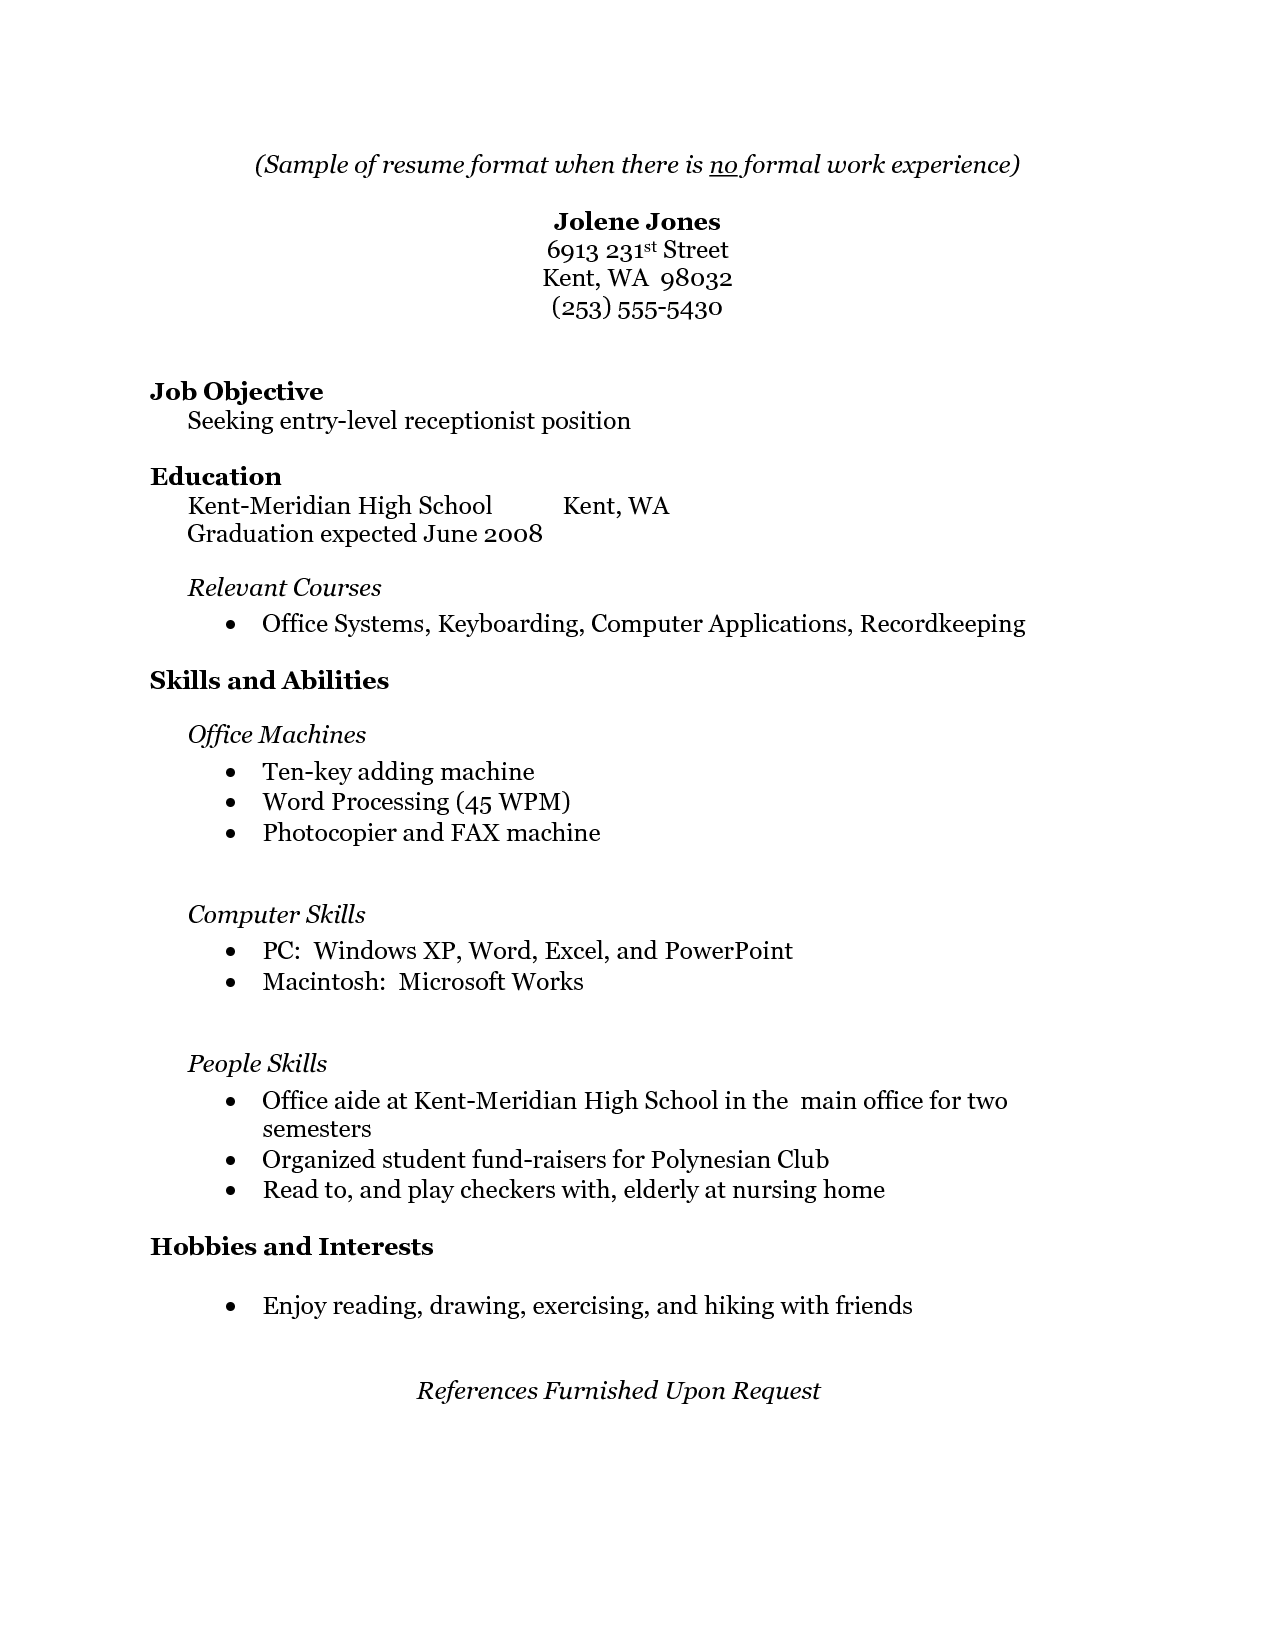 Resume Templates With No Experience Pinjobresume On Resume Career Termplate Free  Pinterest  Job